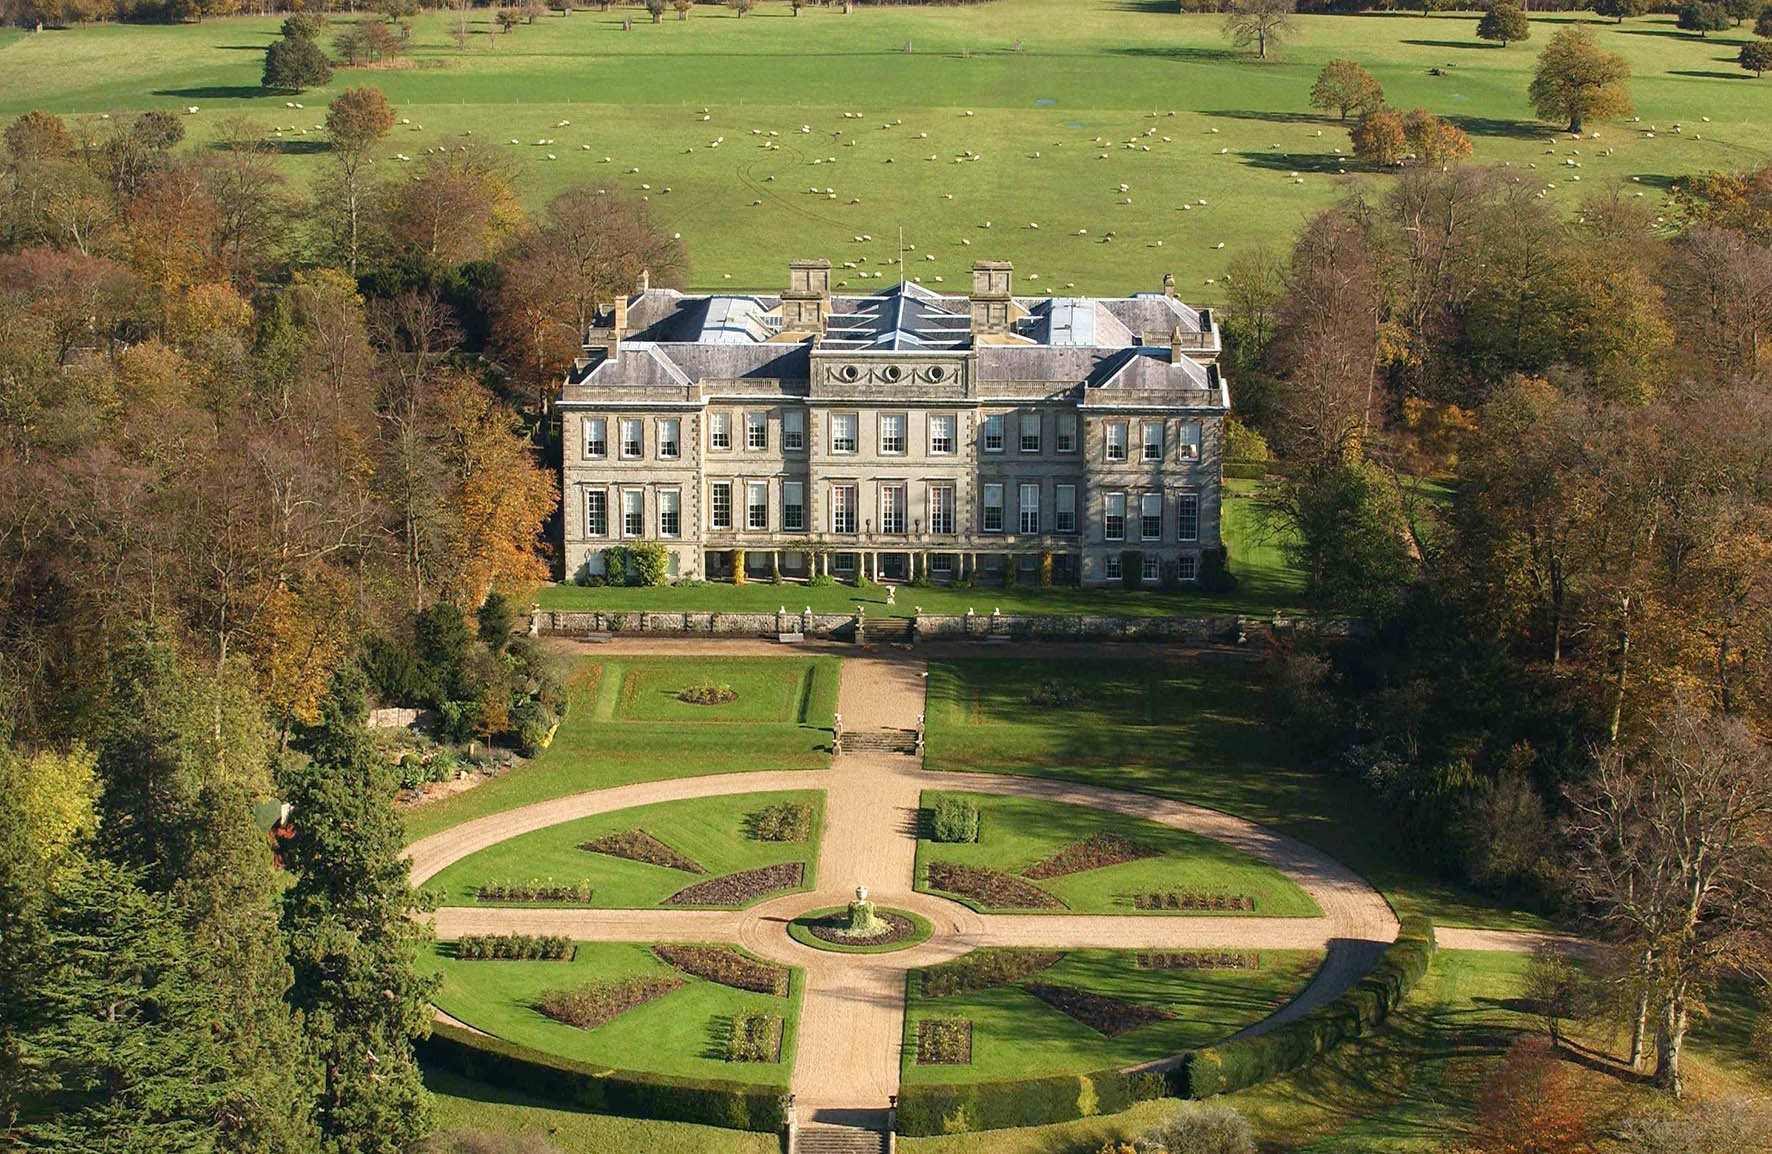 an-aerial-view-of-Ragley-hall-and-gardens